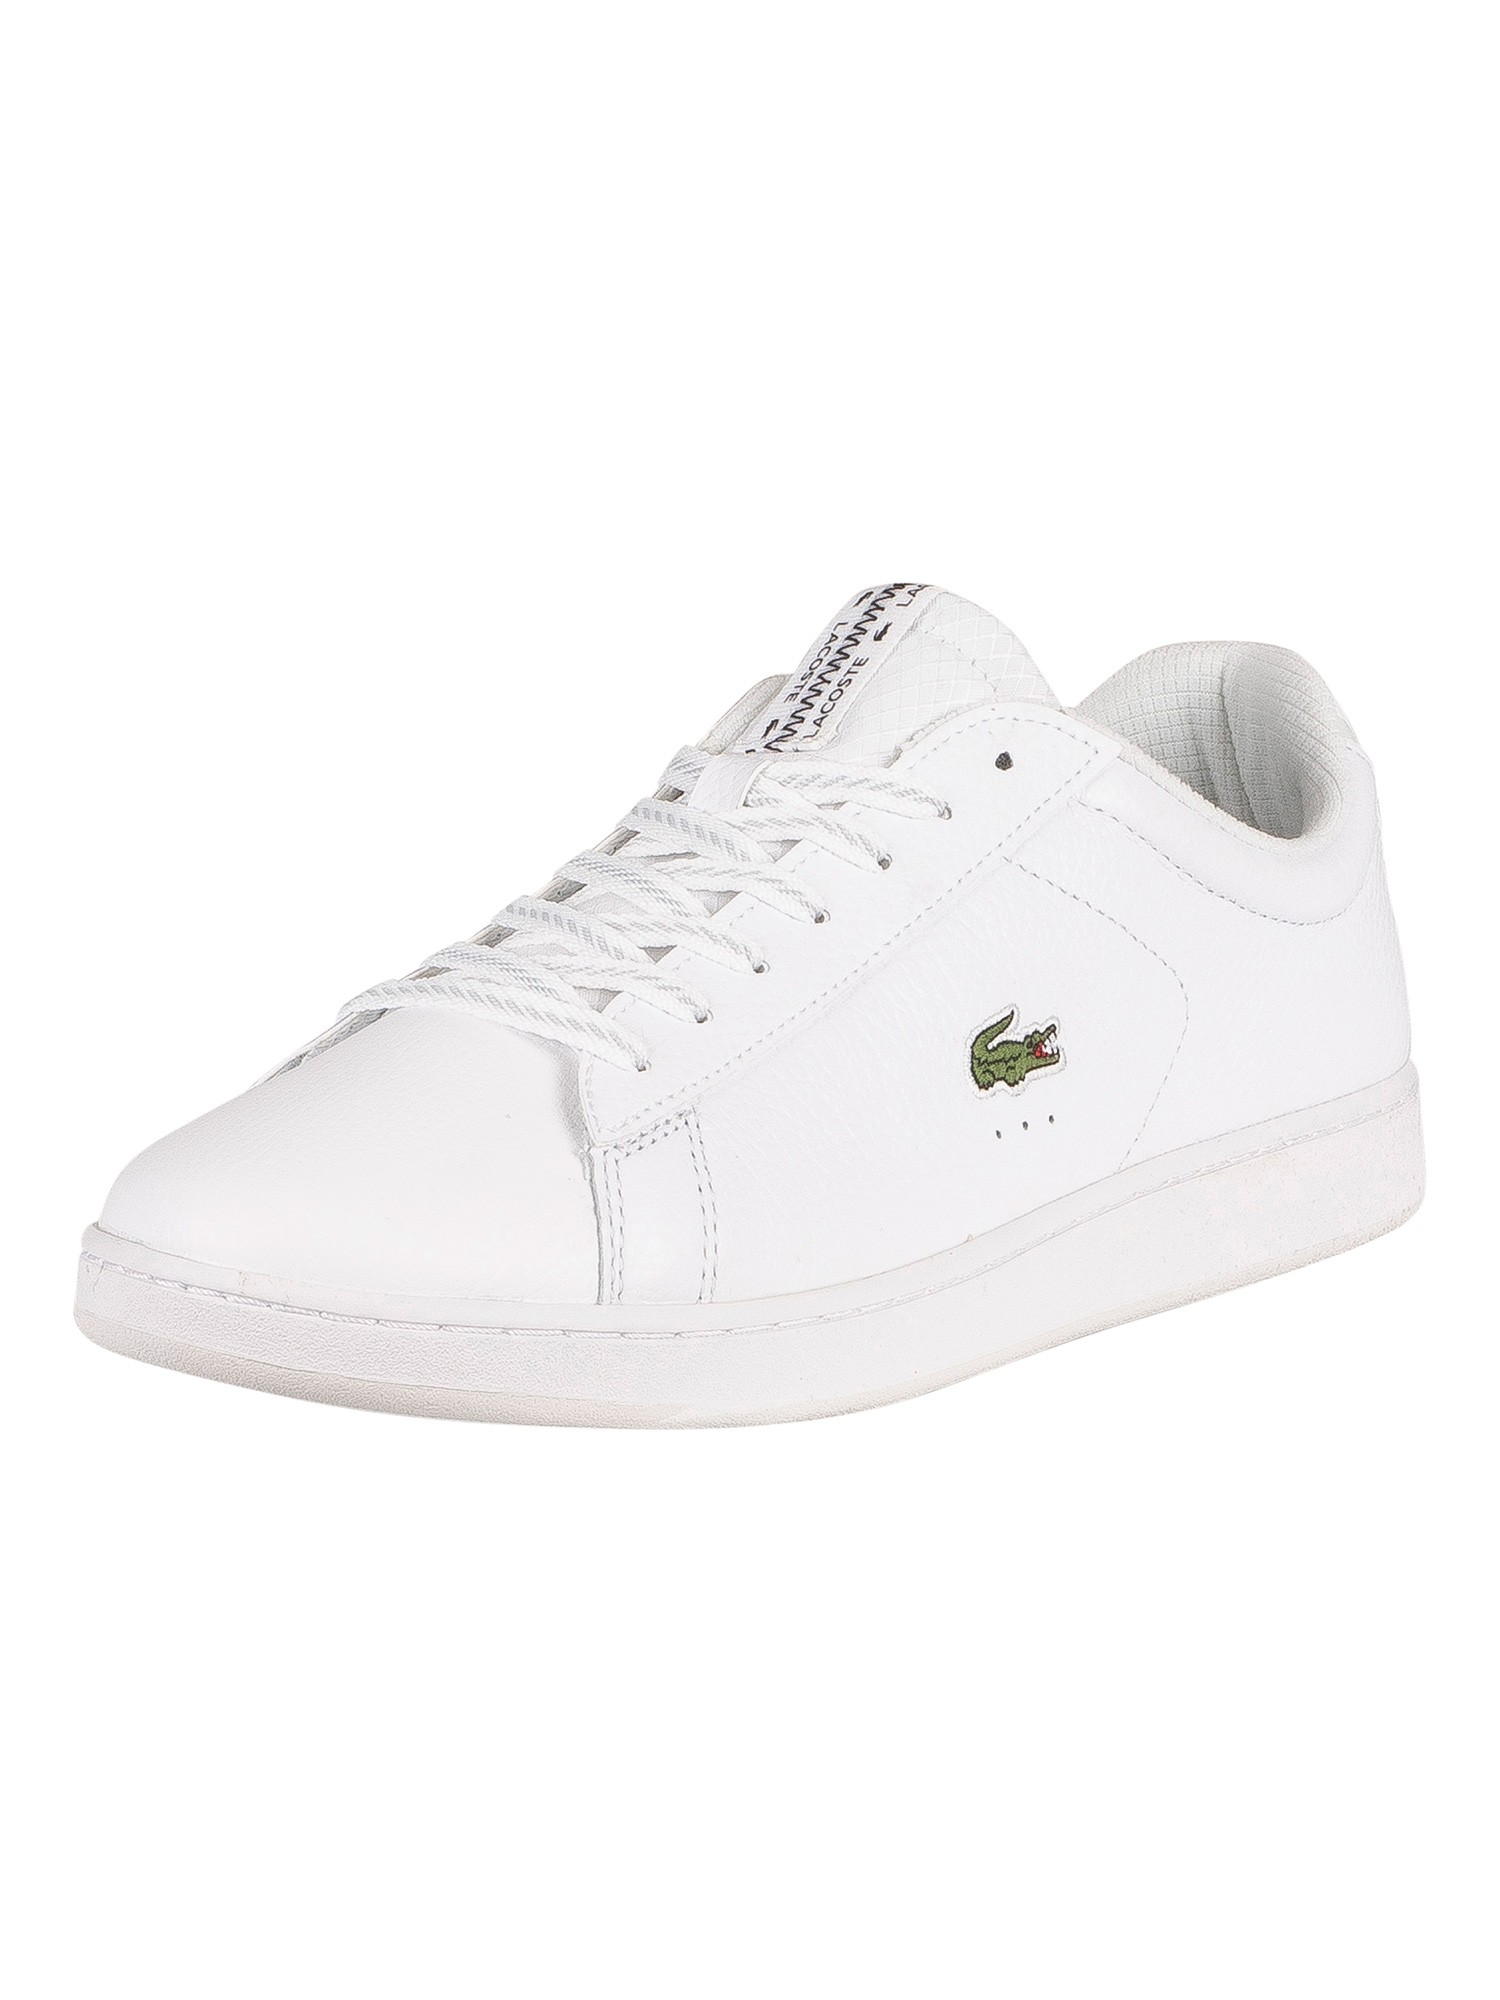 Carnaby Evo 0520 1 SMA Leather Trainers